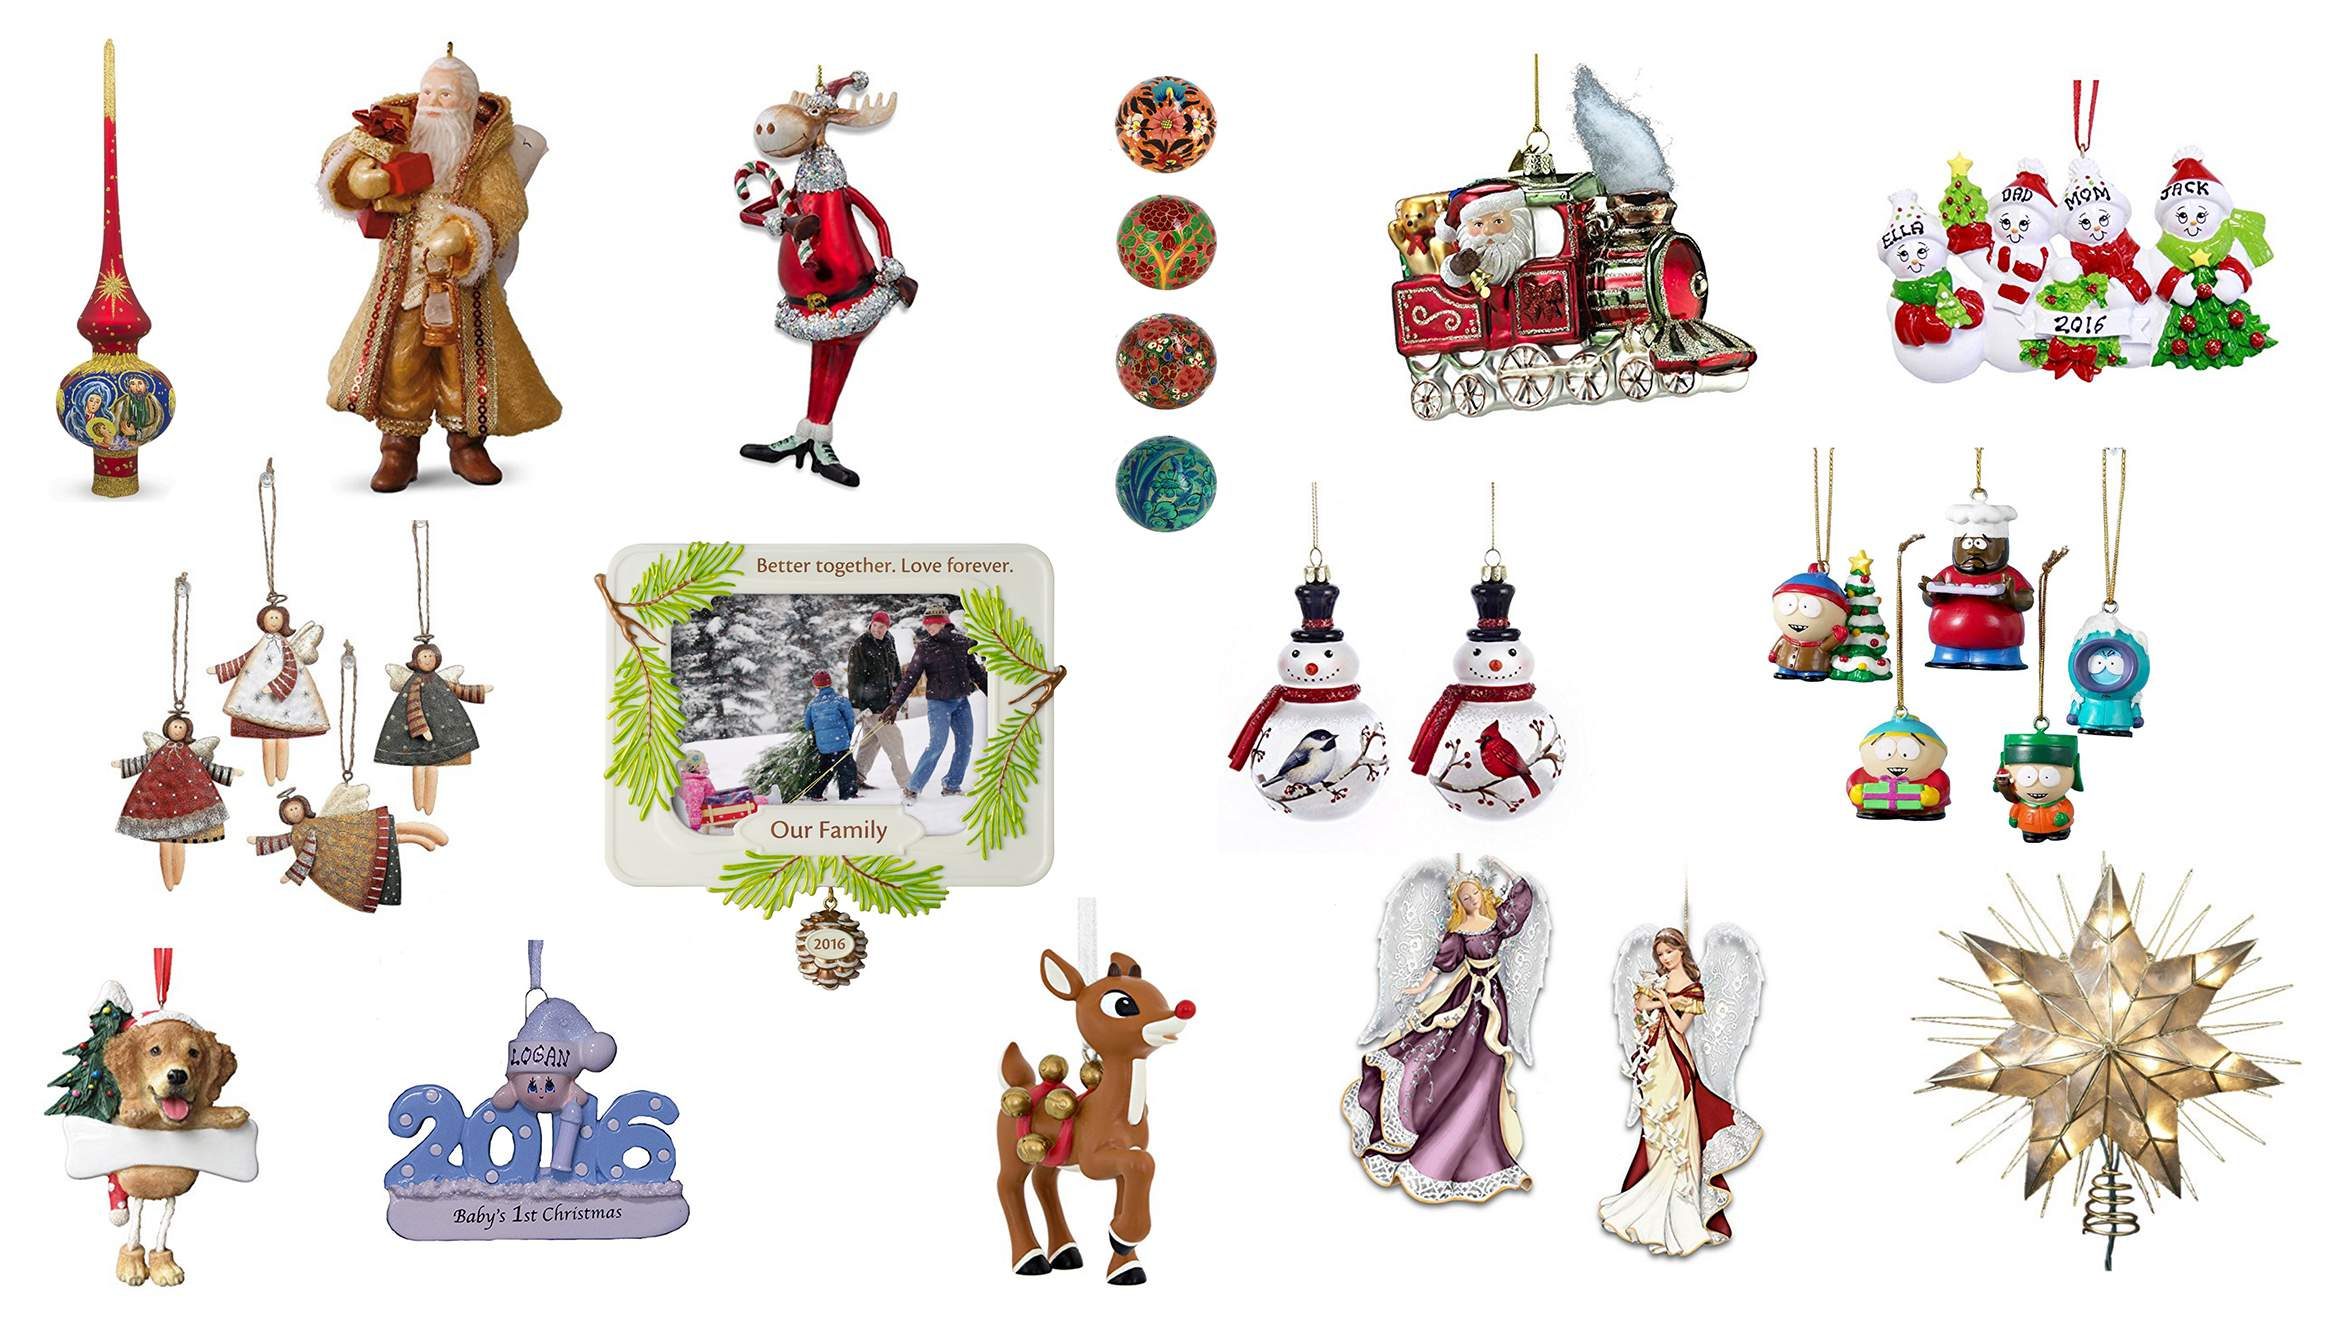 Top 40 Best Christmas Tree Ornaments for 2016.